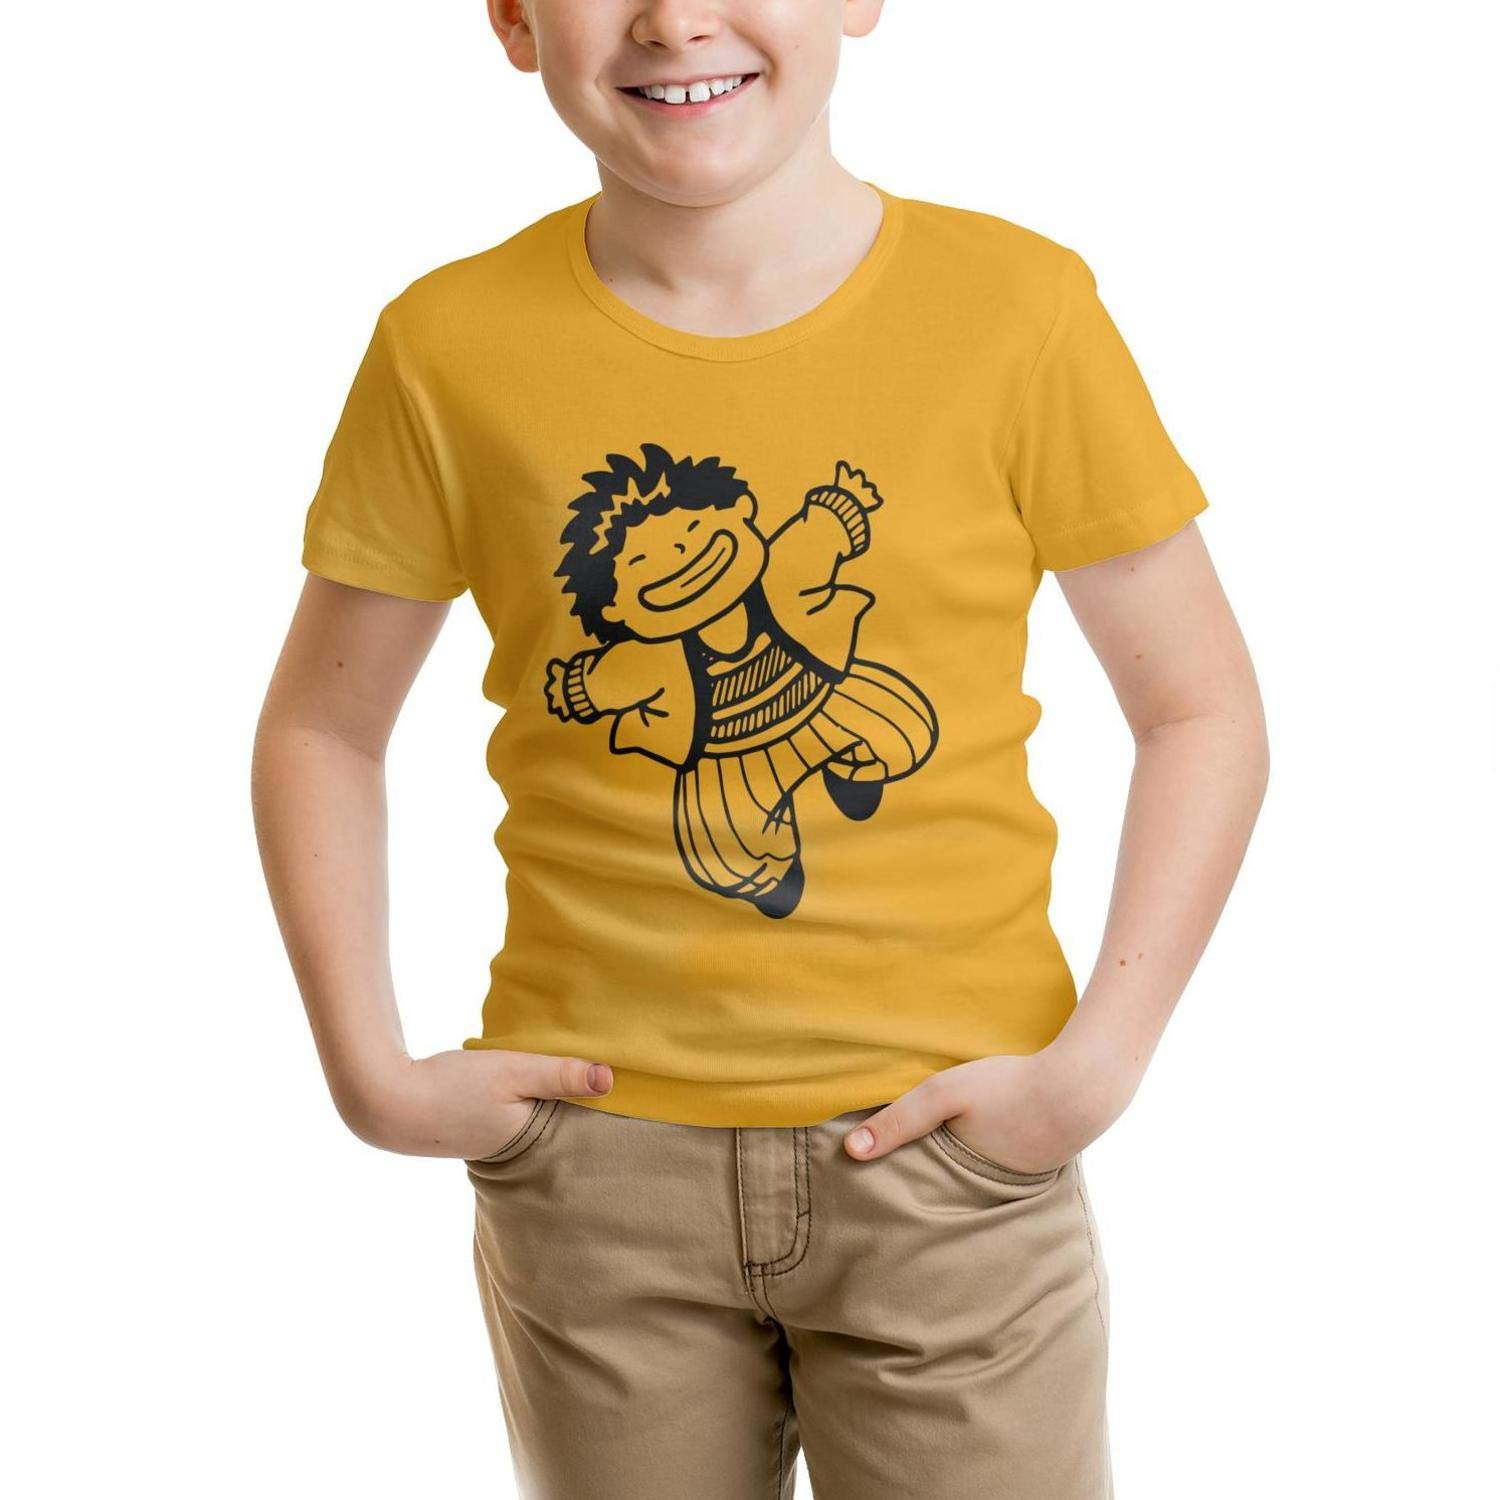 Childrens Acrobatic Performance Boys CottonTee Novelty forYoung Shirts Laconic Parttern